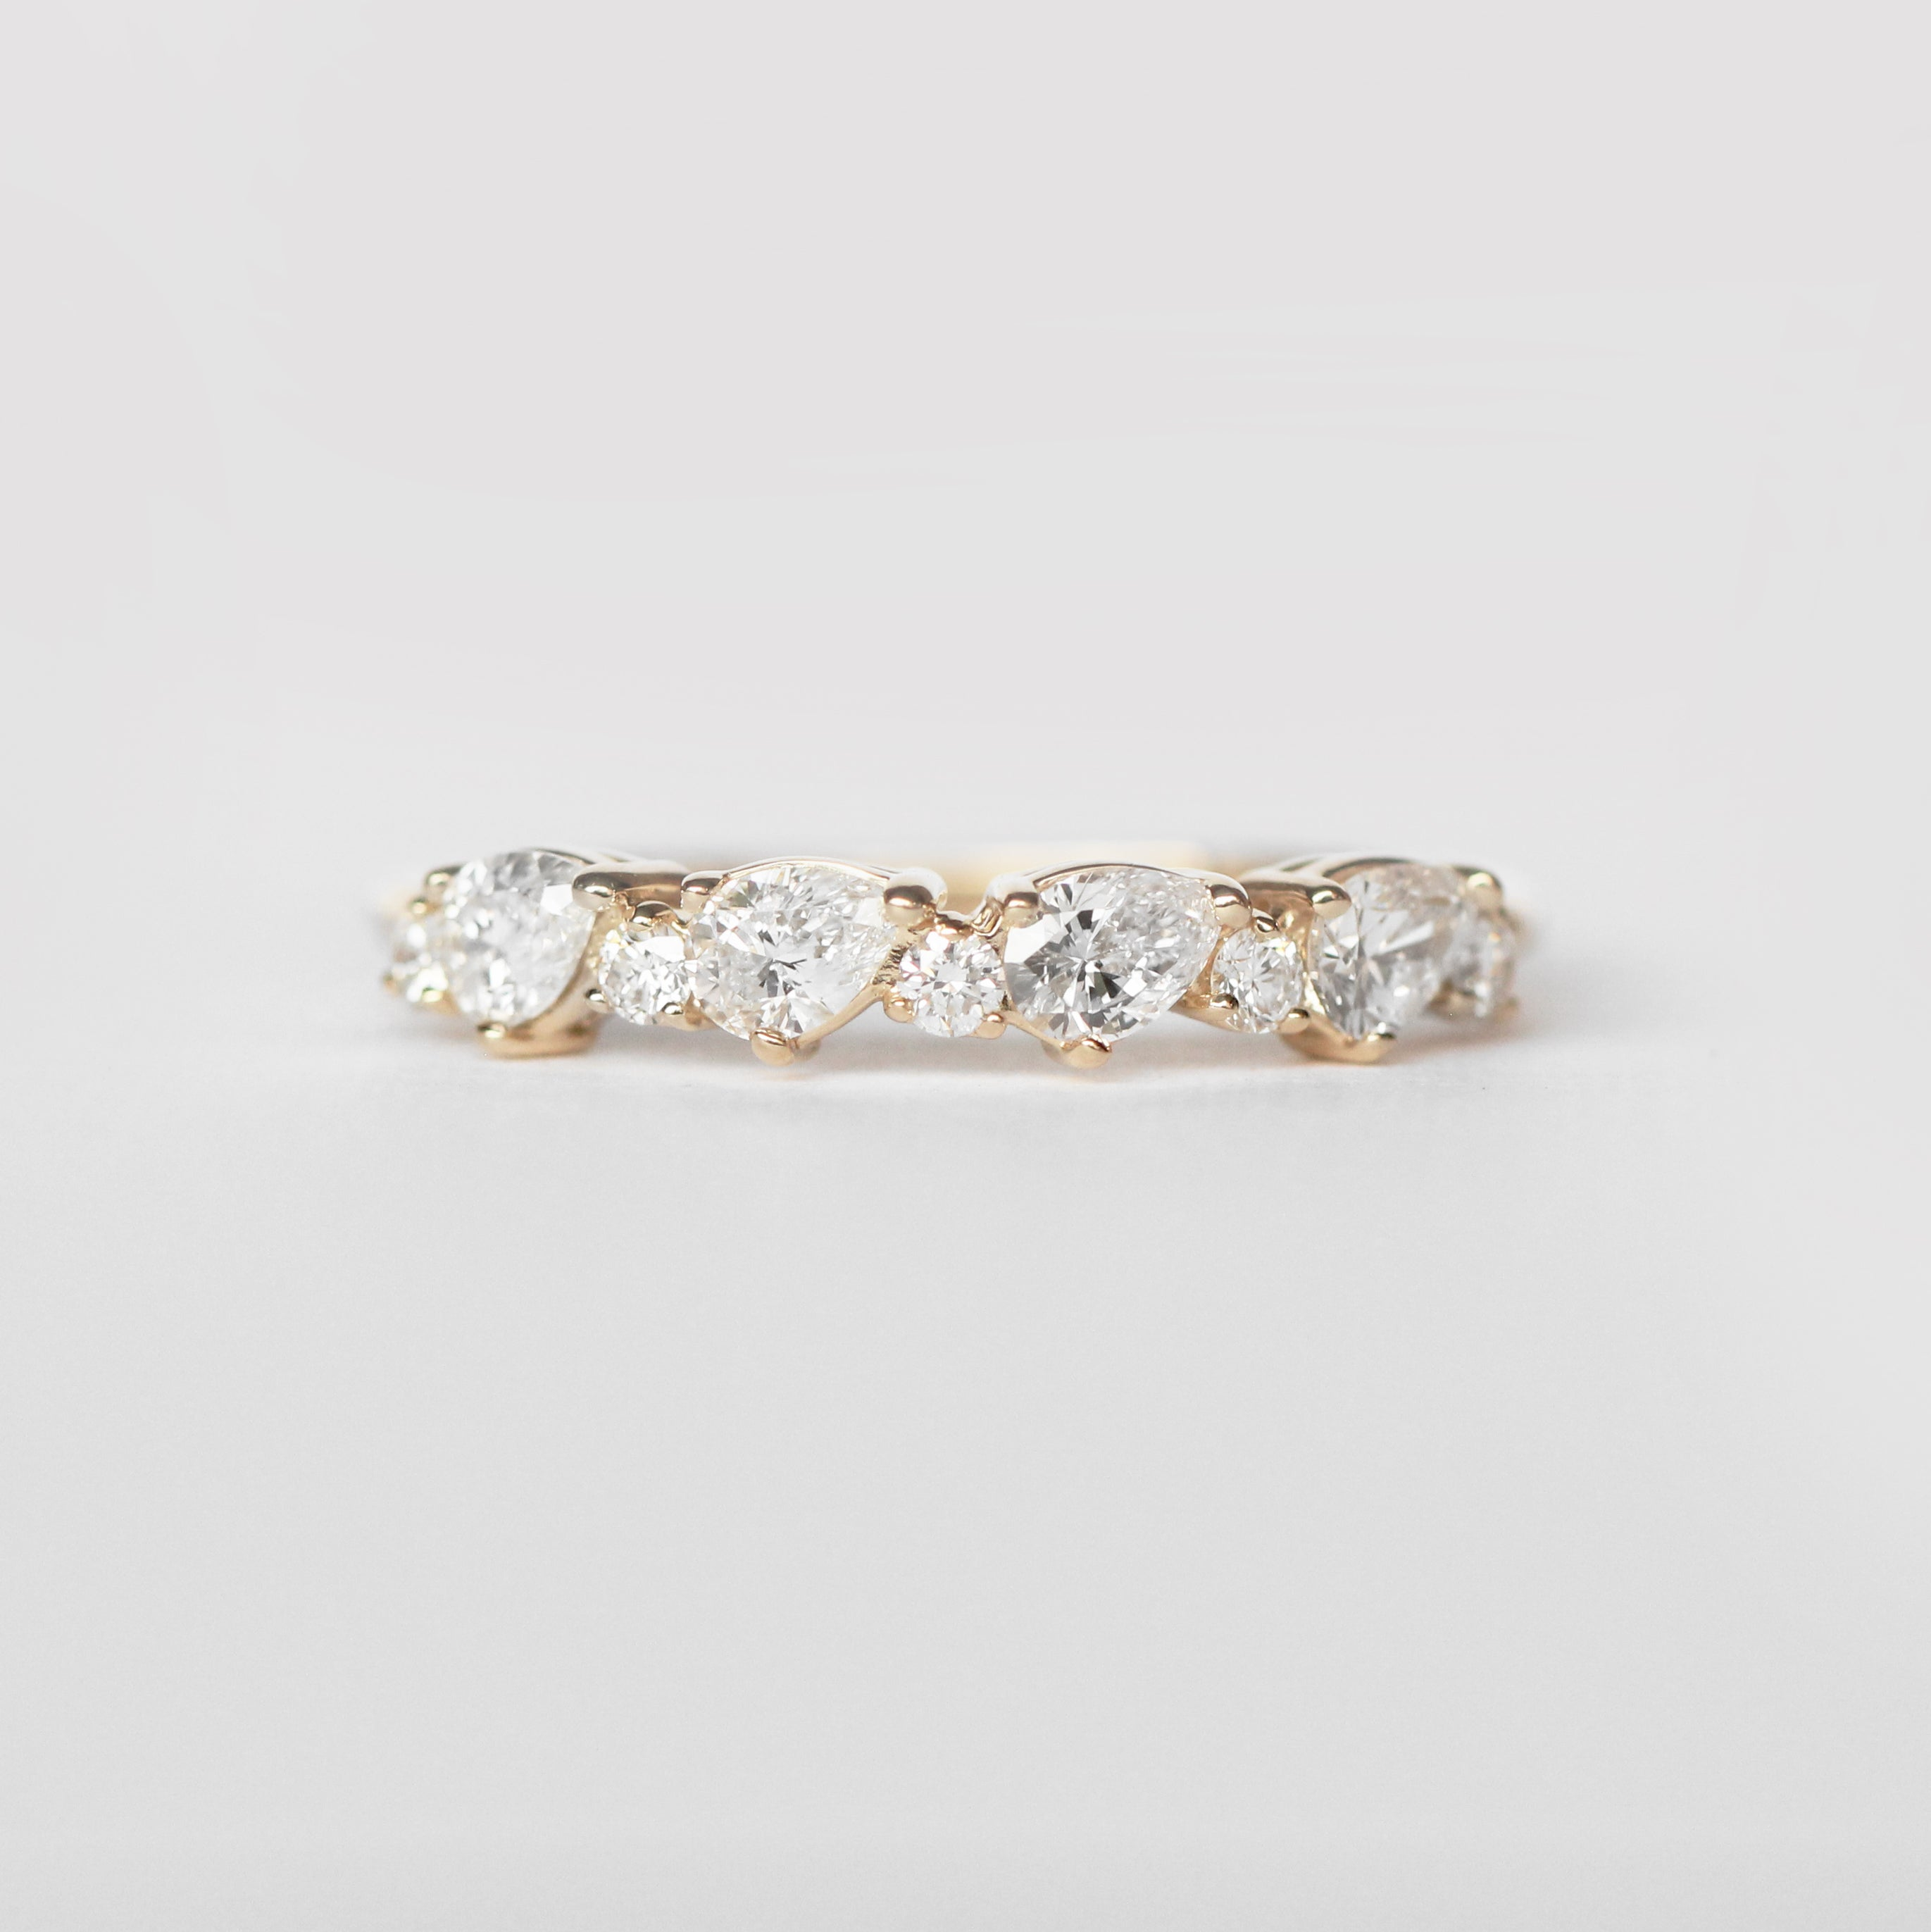 Reya Diamond Engagement Ring Band - White diamonds - Salt & Pepper Celestial Diamond Engagement Rings and Wedding Bands  by Midwinter Co.